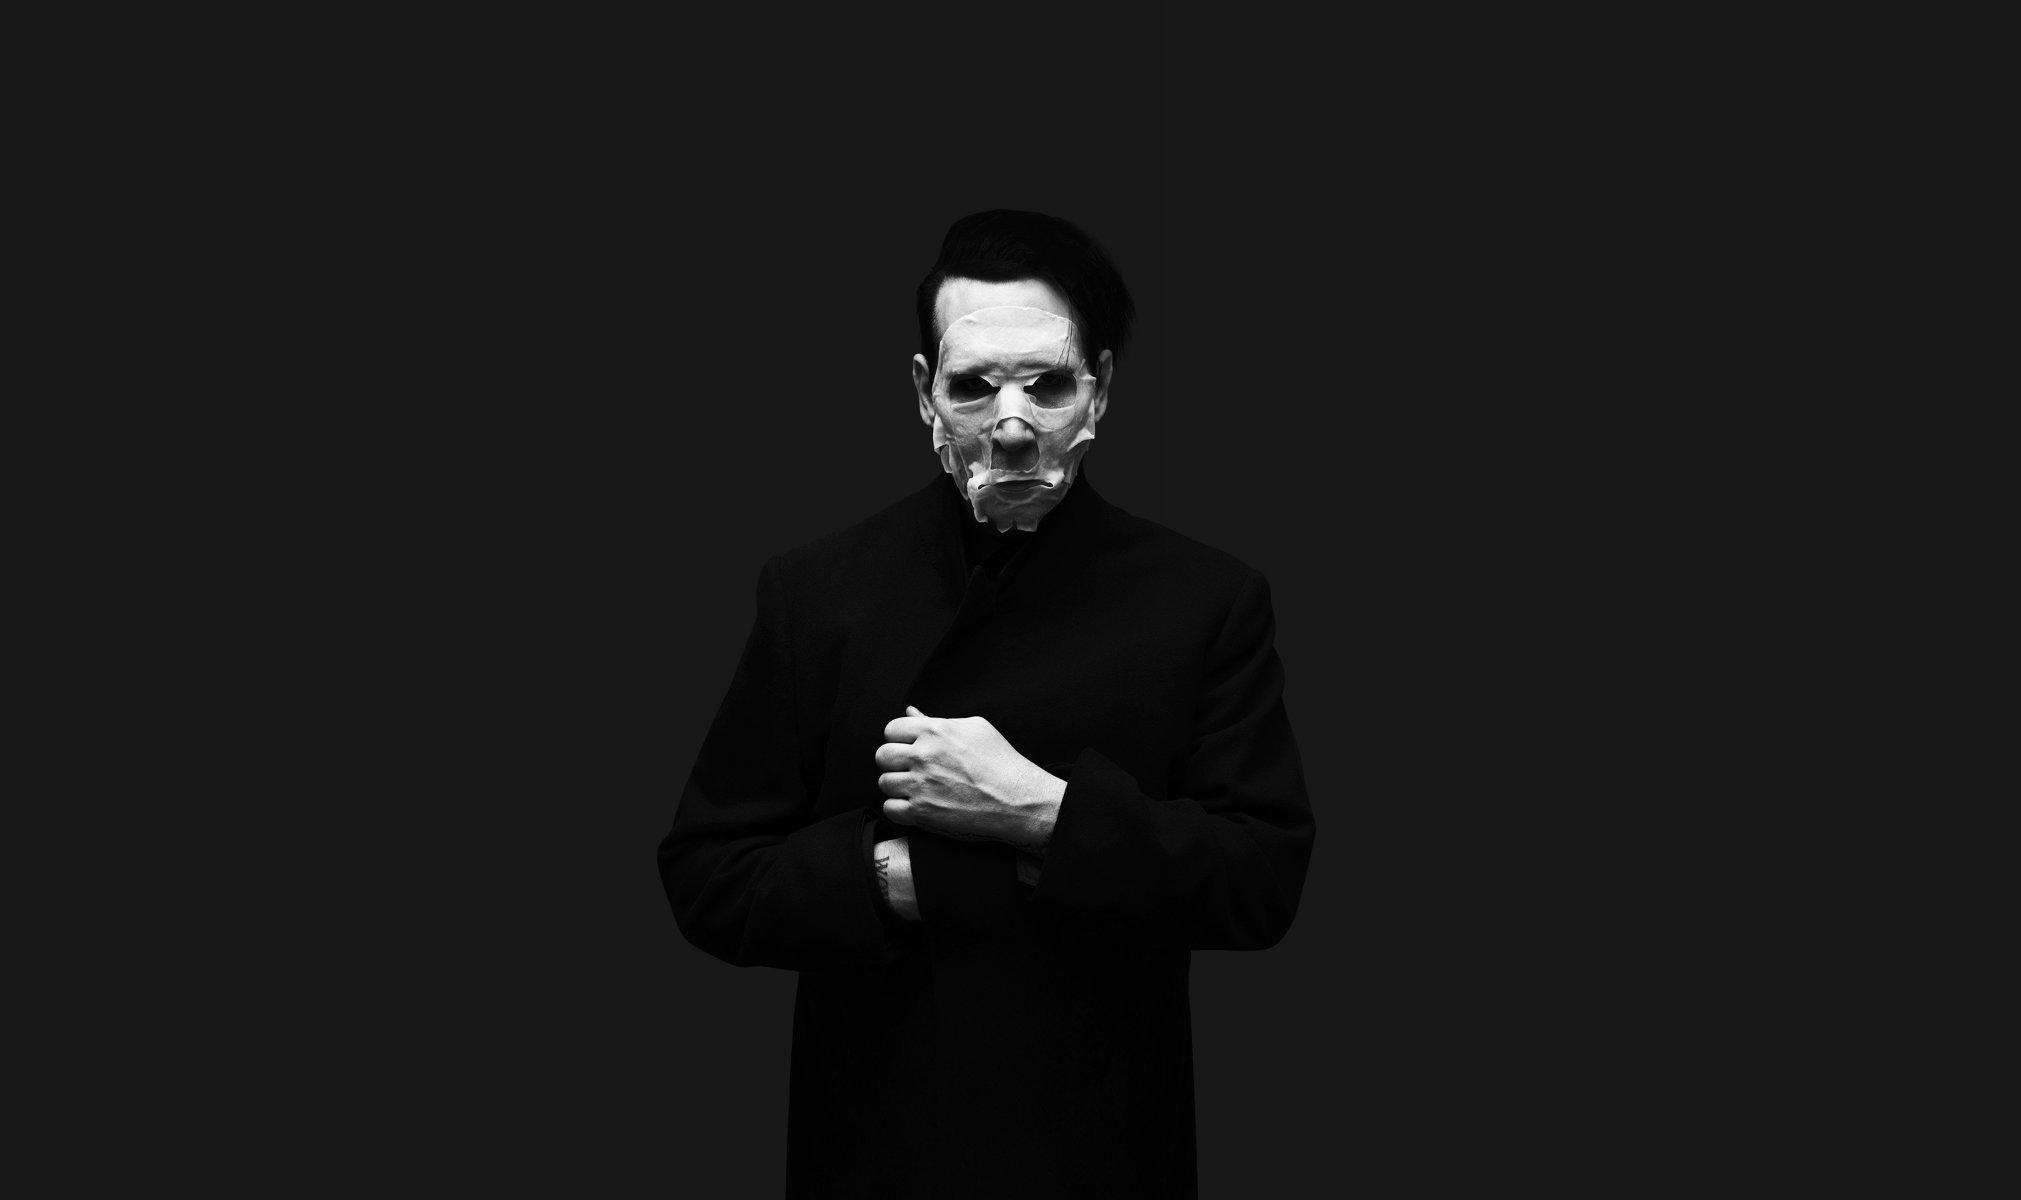 marilyn manson alternative rock the pale emperor album artist 2015 ...